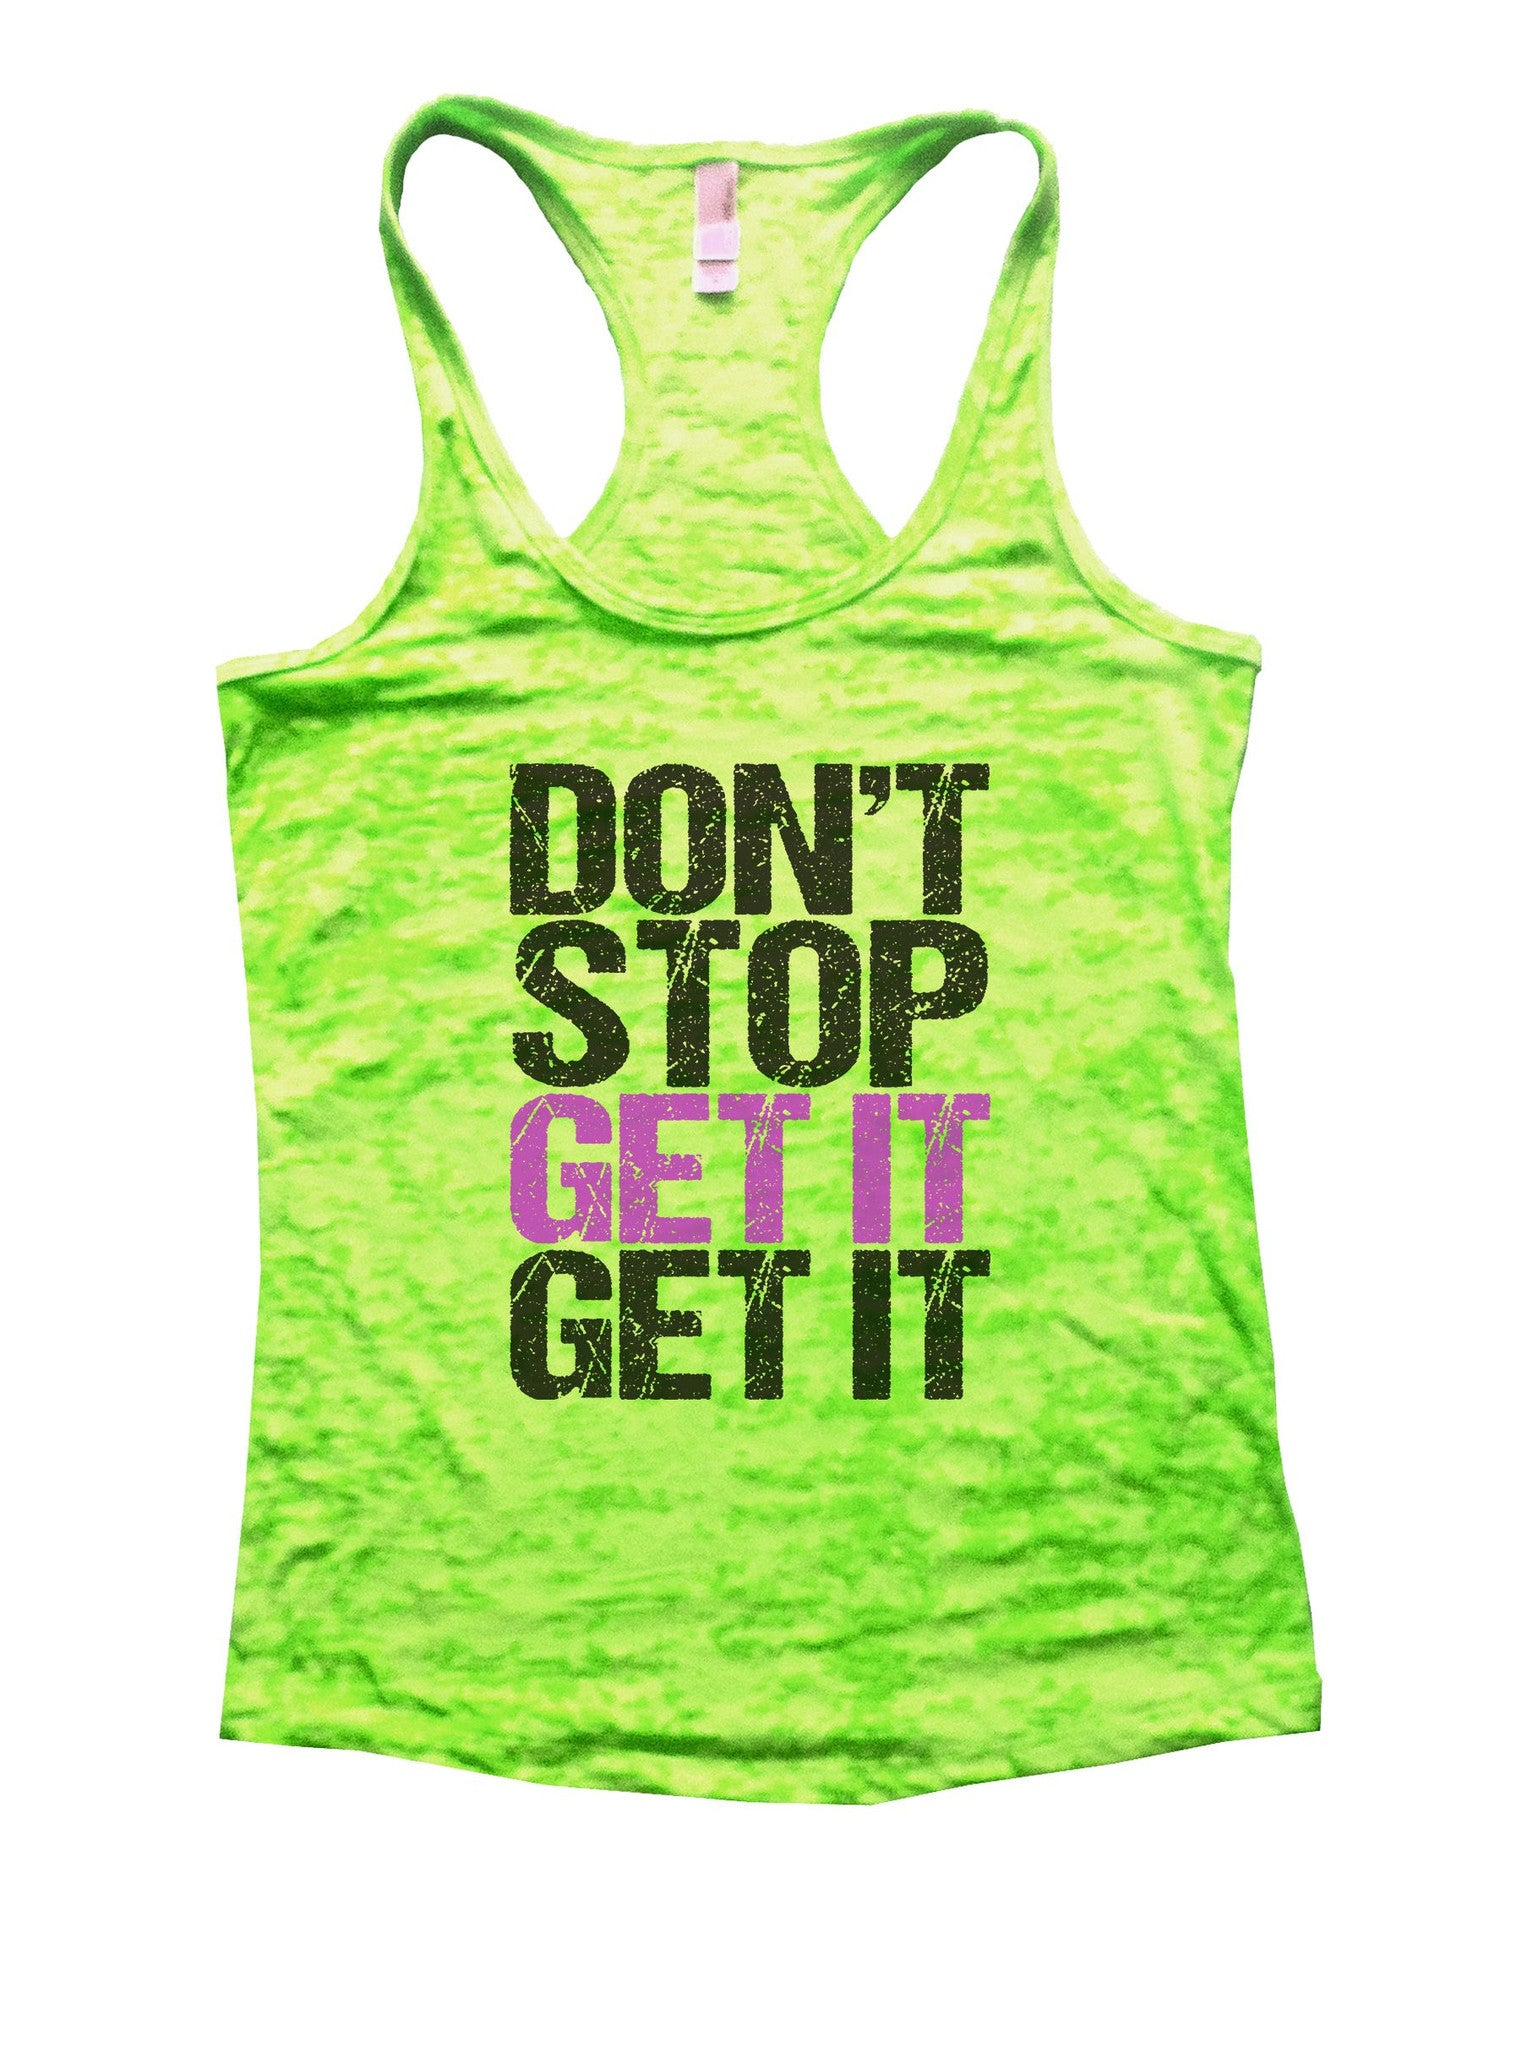 Don't Stop Get It Get It Burnout Tank Top By BurnoutTankTops.com - 1105 - Funny Shirts Tank Tops Burnouts and Triblends  - 4